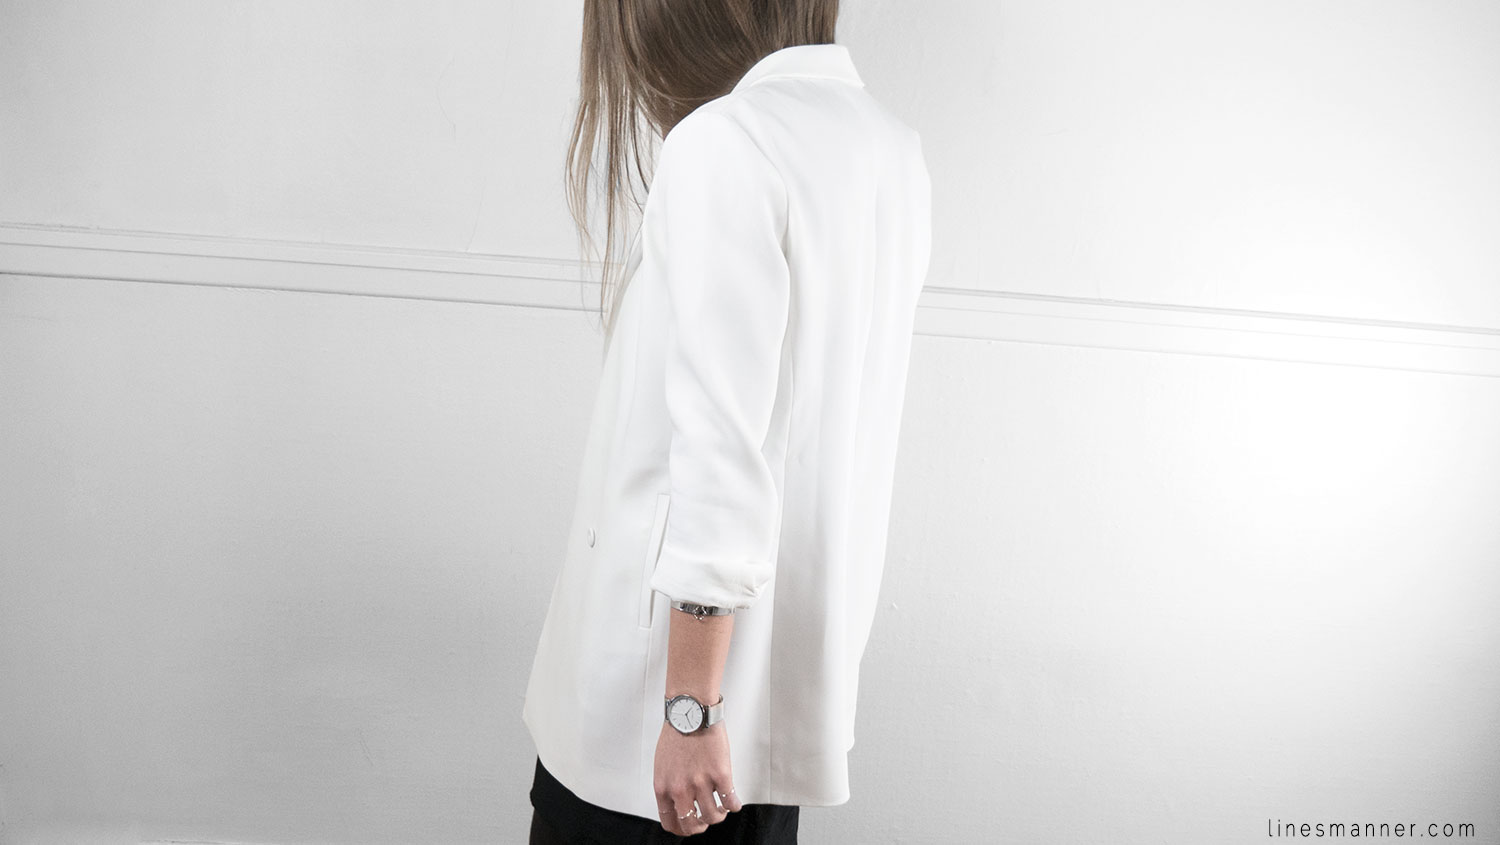 Lines-Manner-Minimal-White-Blazer-Quality-Essential-Brightly-Fresh-Sophistication-Staple-Classics-9